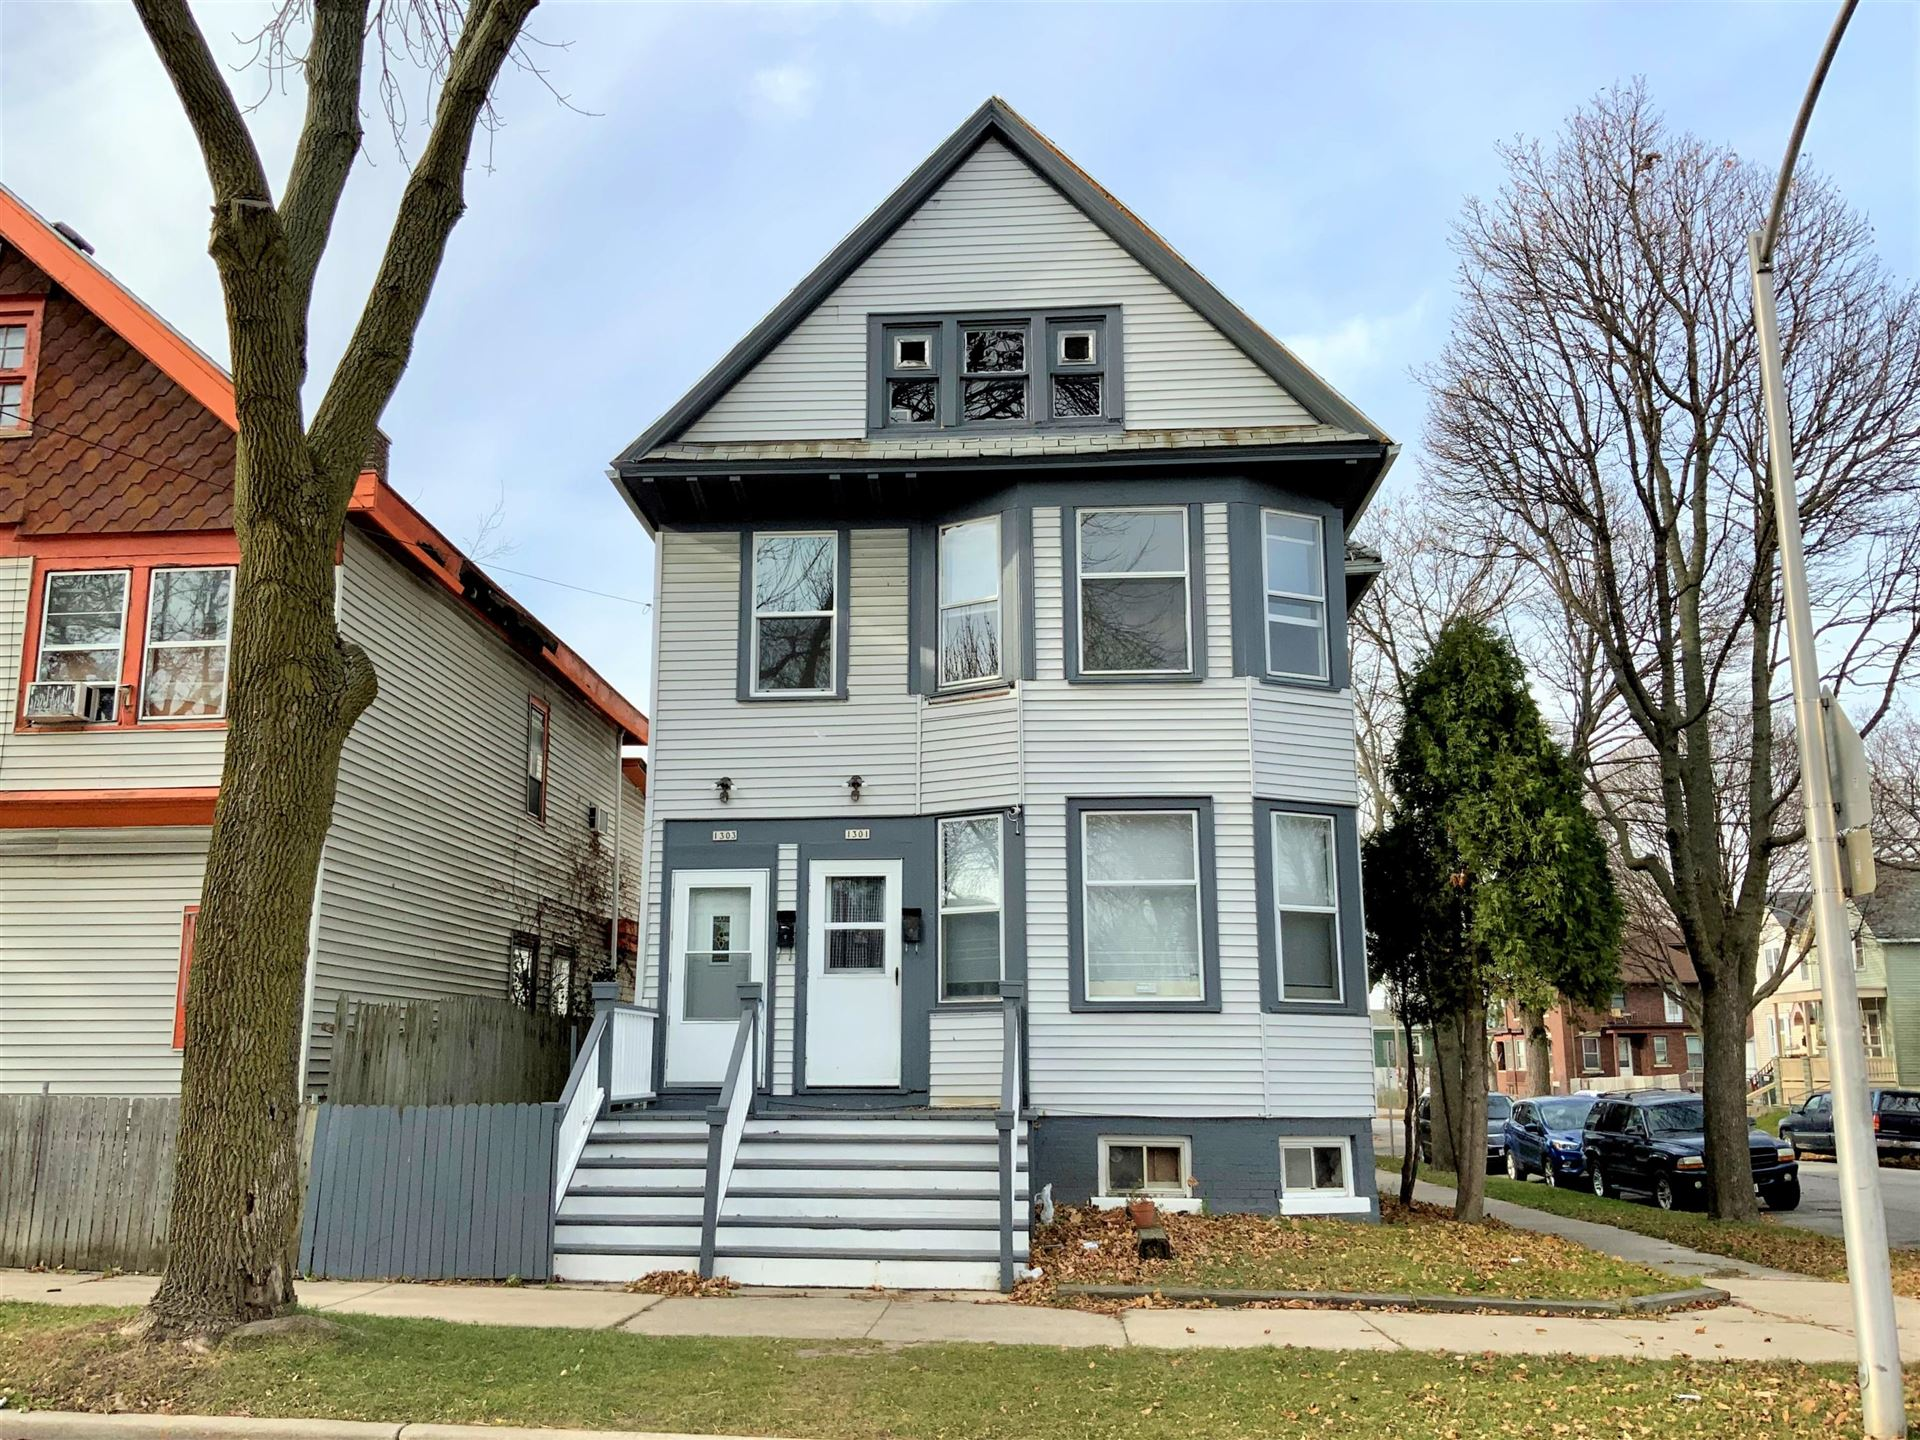 1301 S 8th St #1303, Milwaukee, WI 53204 - #: 1719391